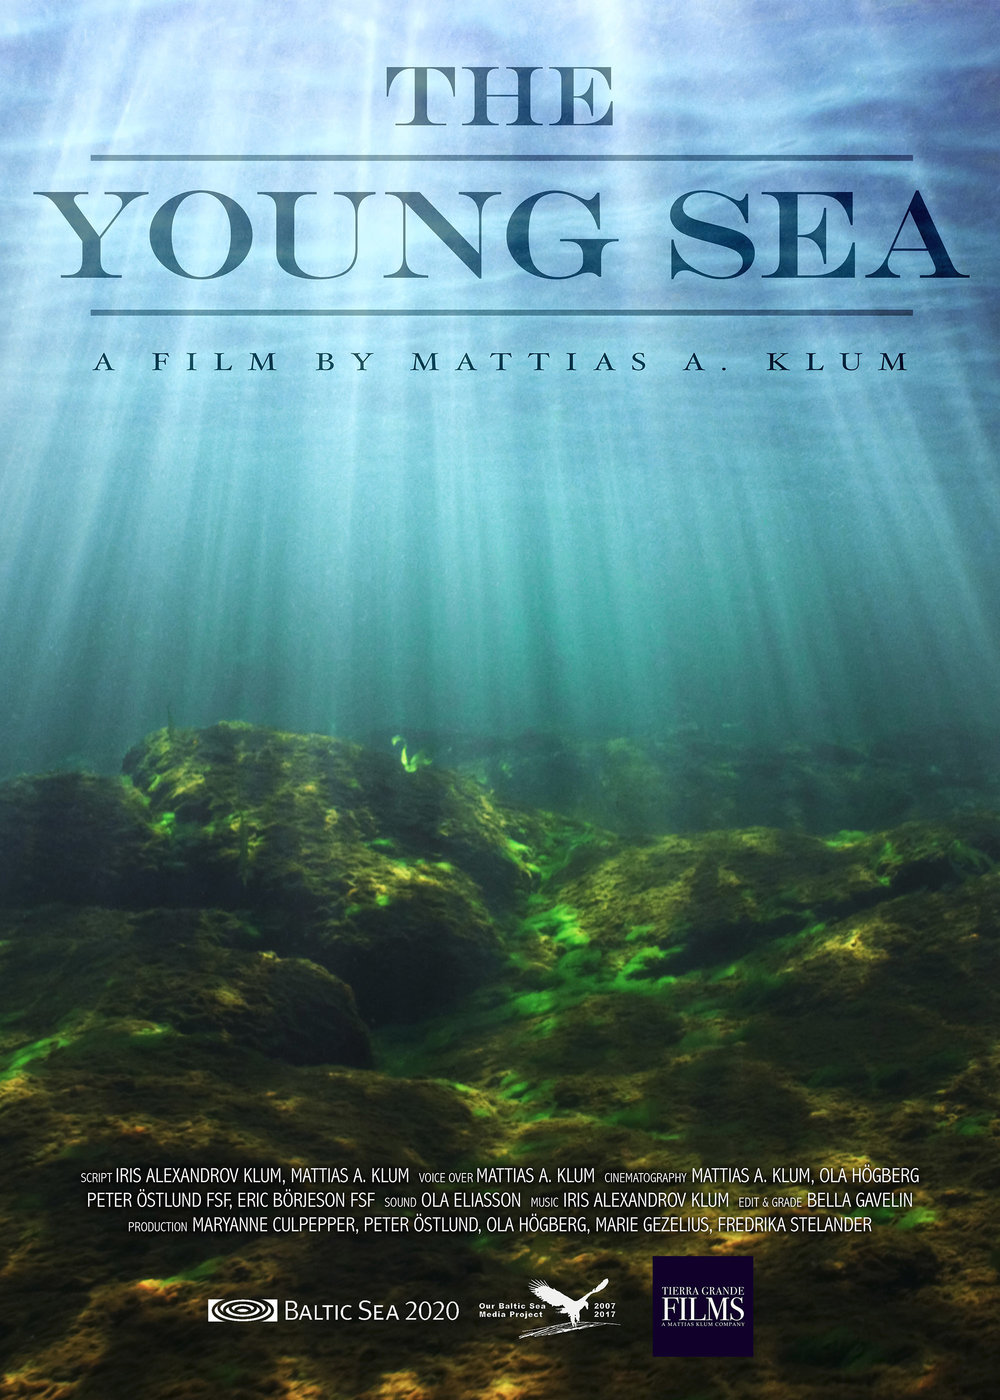 The Young Sea Poster_smaller.jpg